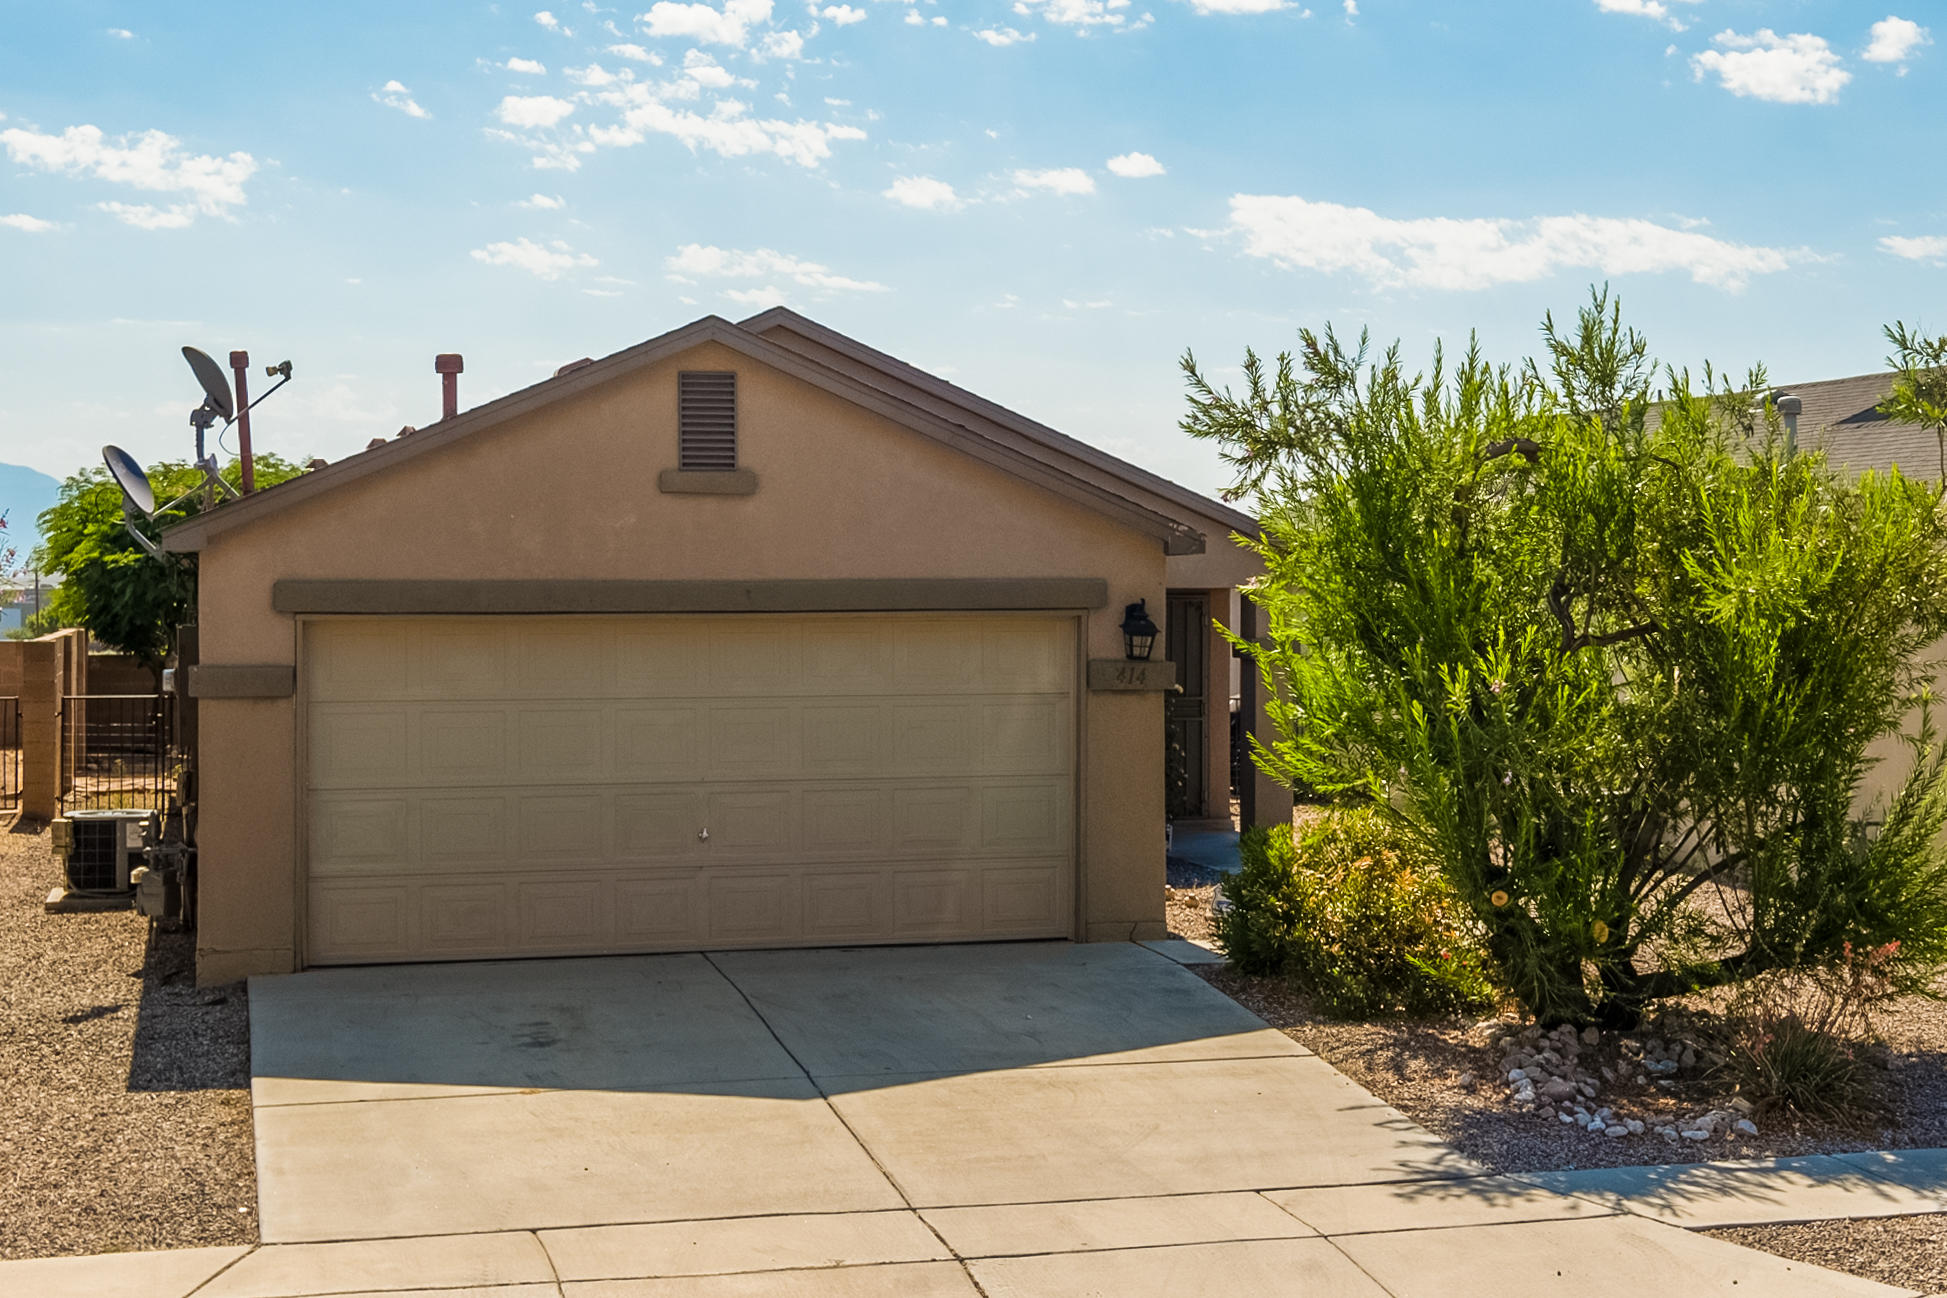 Great one level  see virtual tour- 2 Car Garage in Sundance Subdivision - backyard has views of Sandias!  Refrigerated AC. Great location with easy access to I-40 and shopping --minutes from downtown Albuquerque. Great layout with ample storage. Plan to see this one quickly.